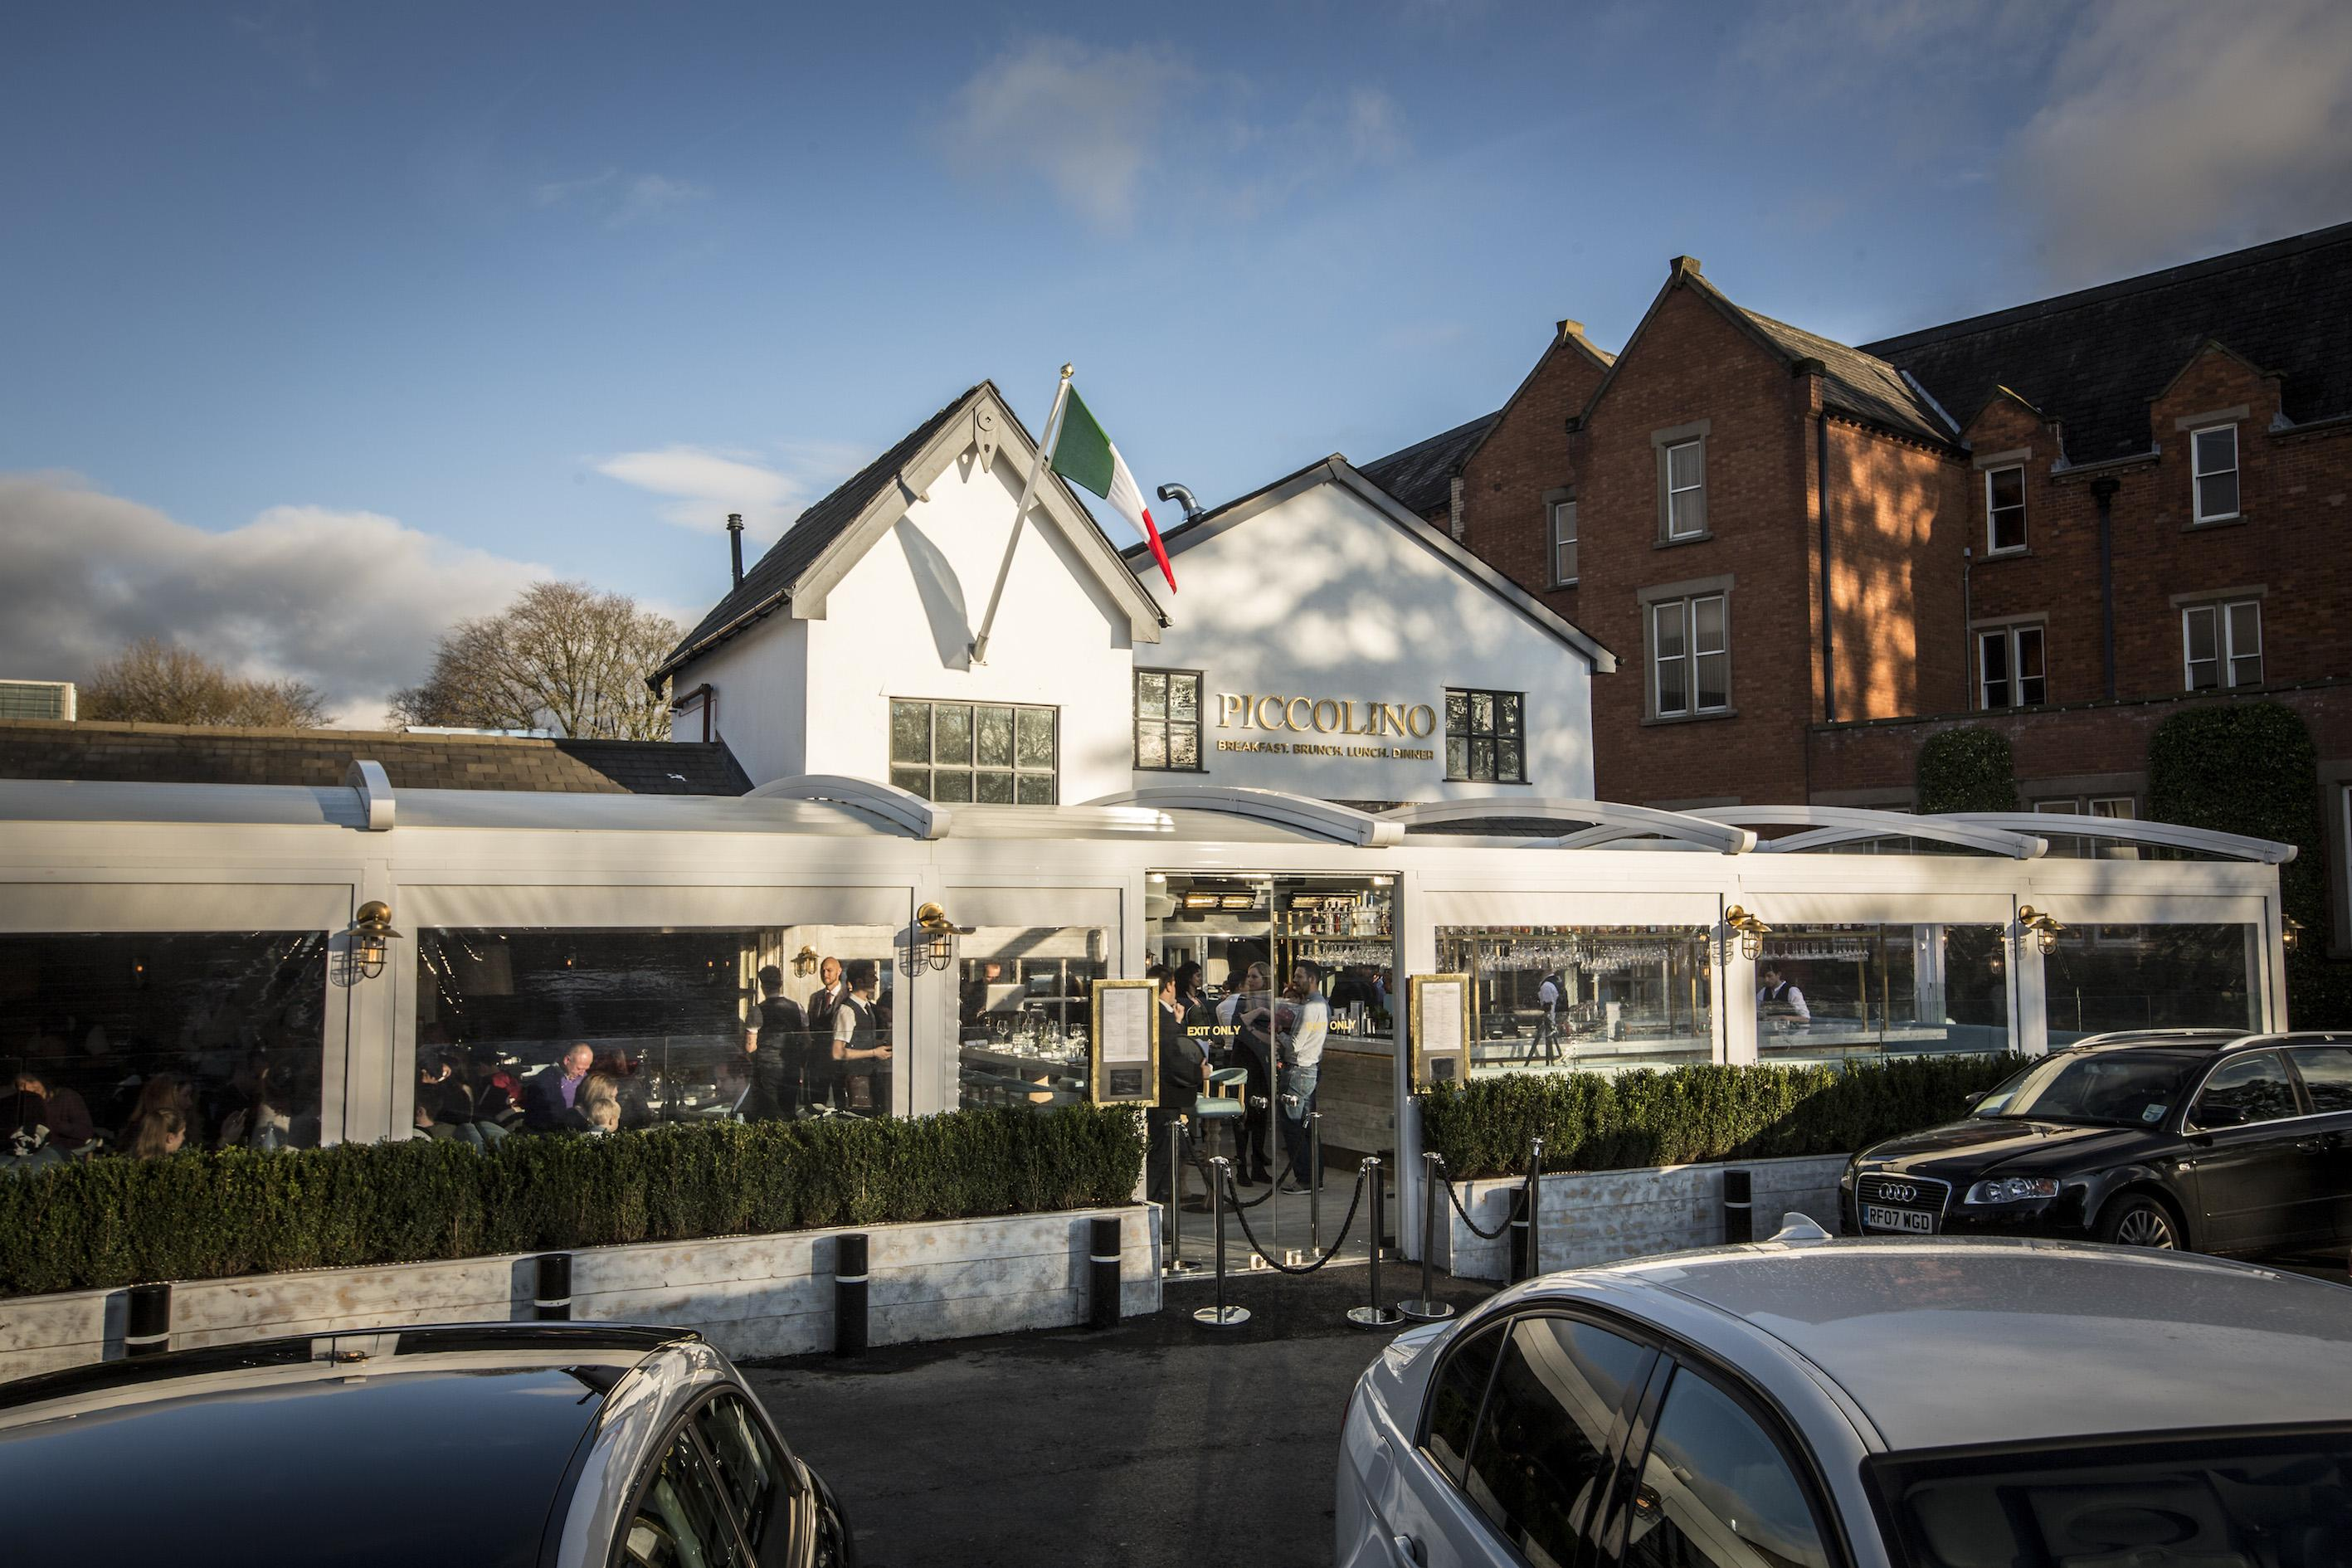 Piccolino - Alderley Edge - Cheshire